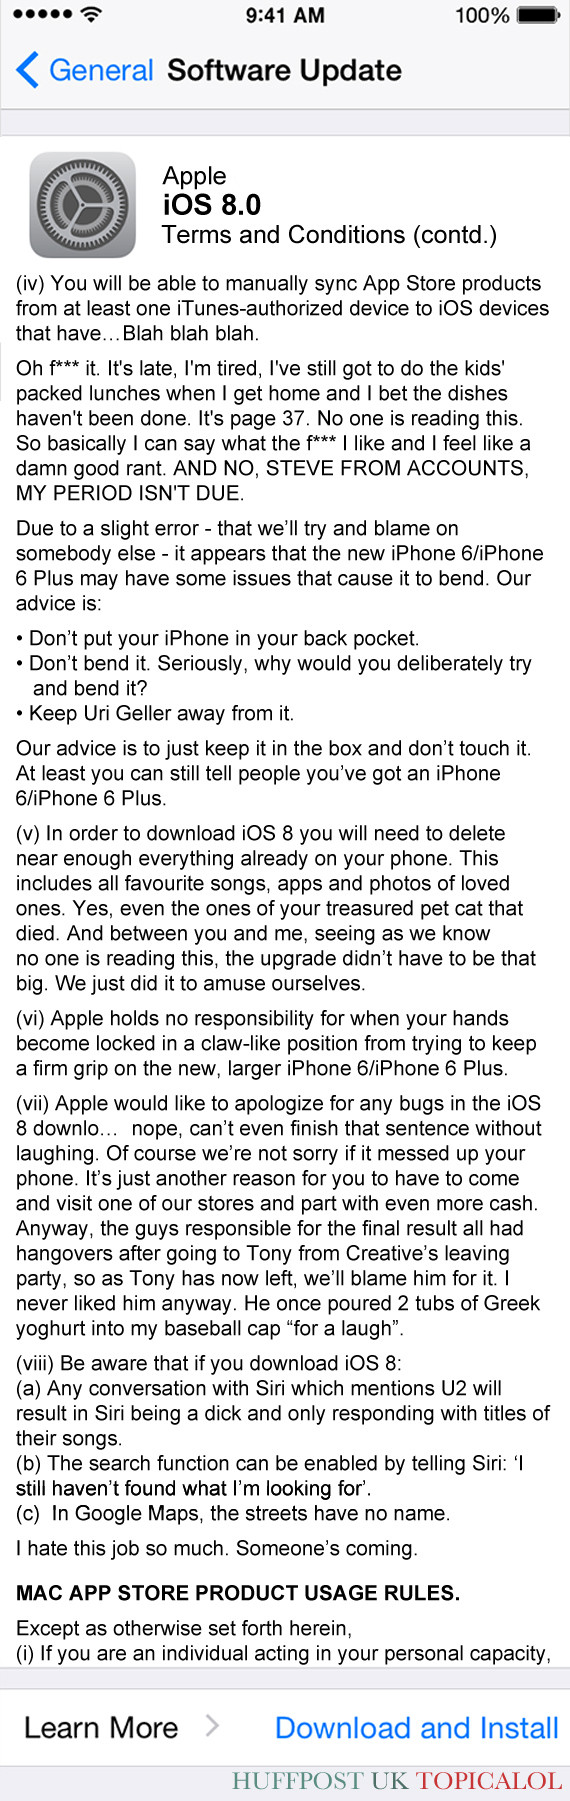 apple ios 8 spoof